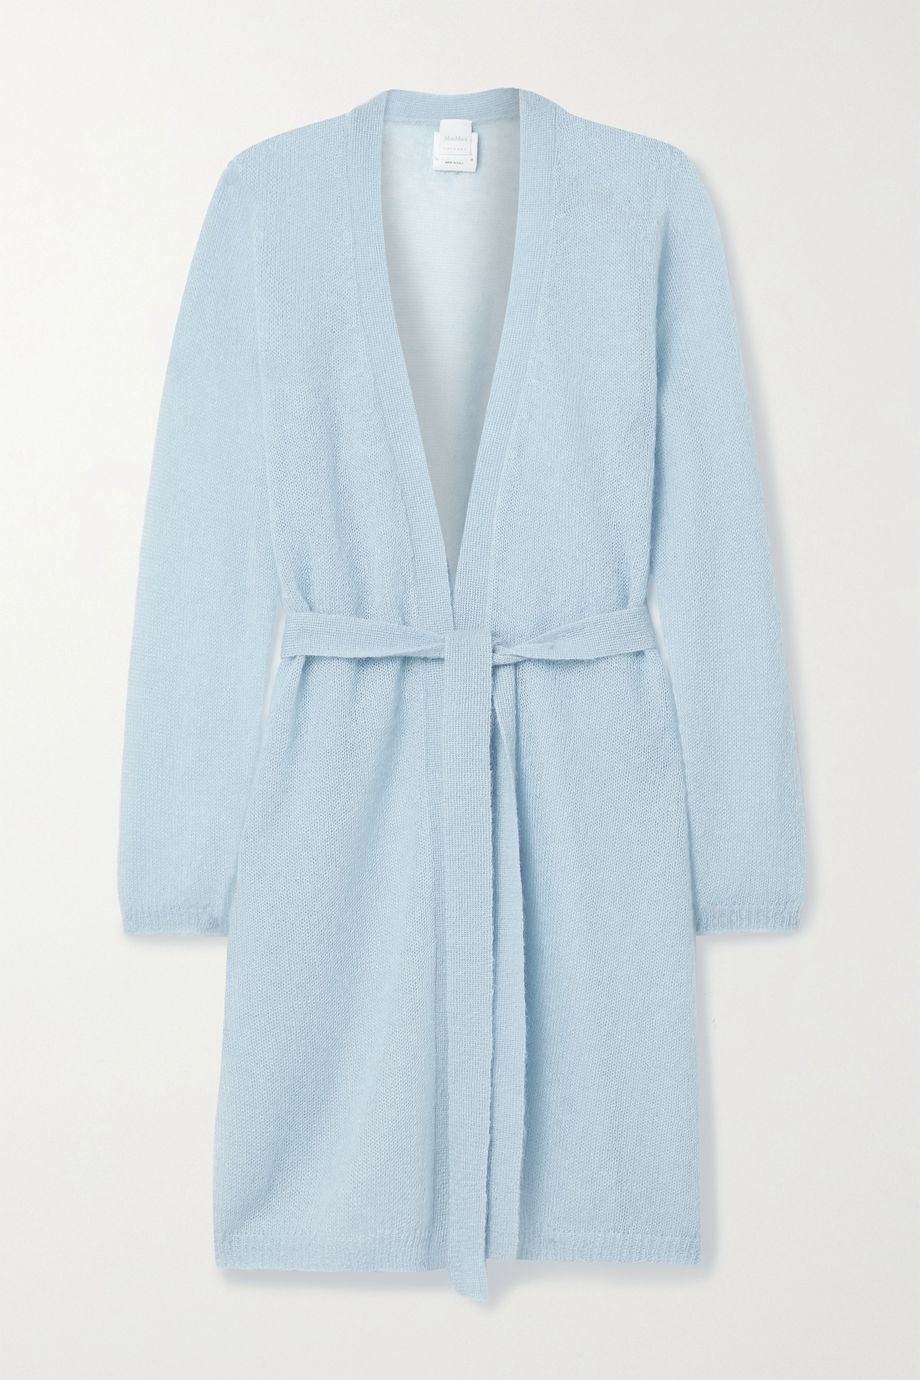 Max Mara Leisure Calante belted mohair-blend cardigan